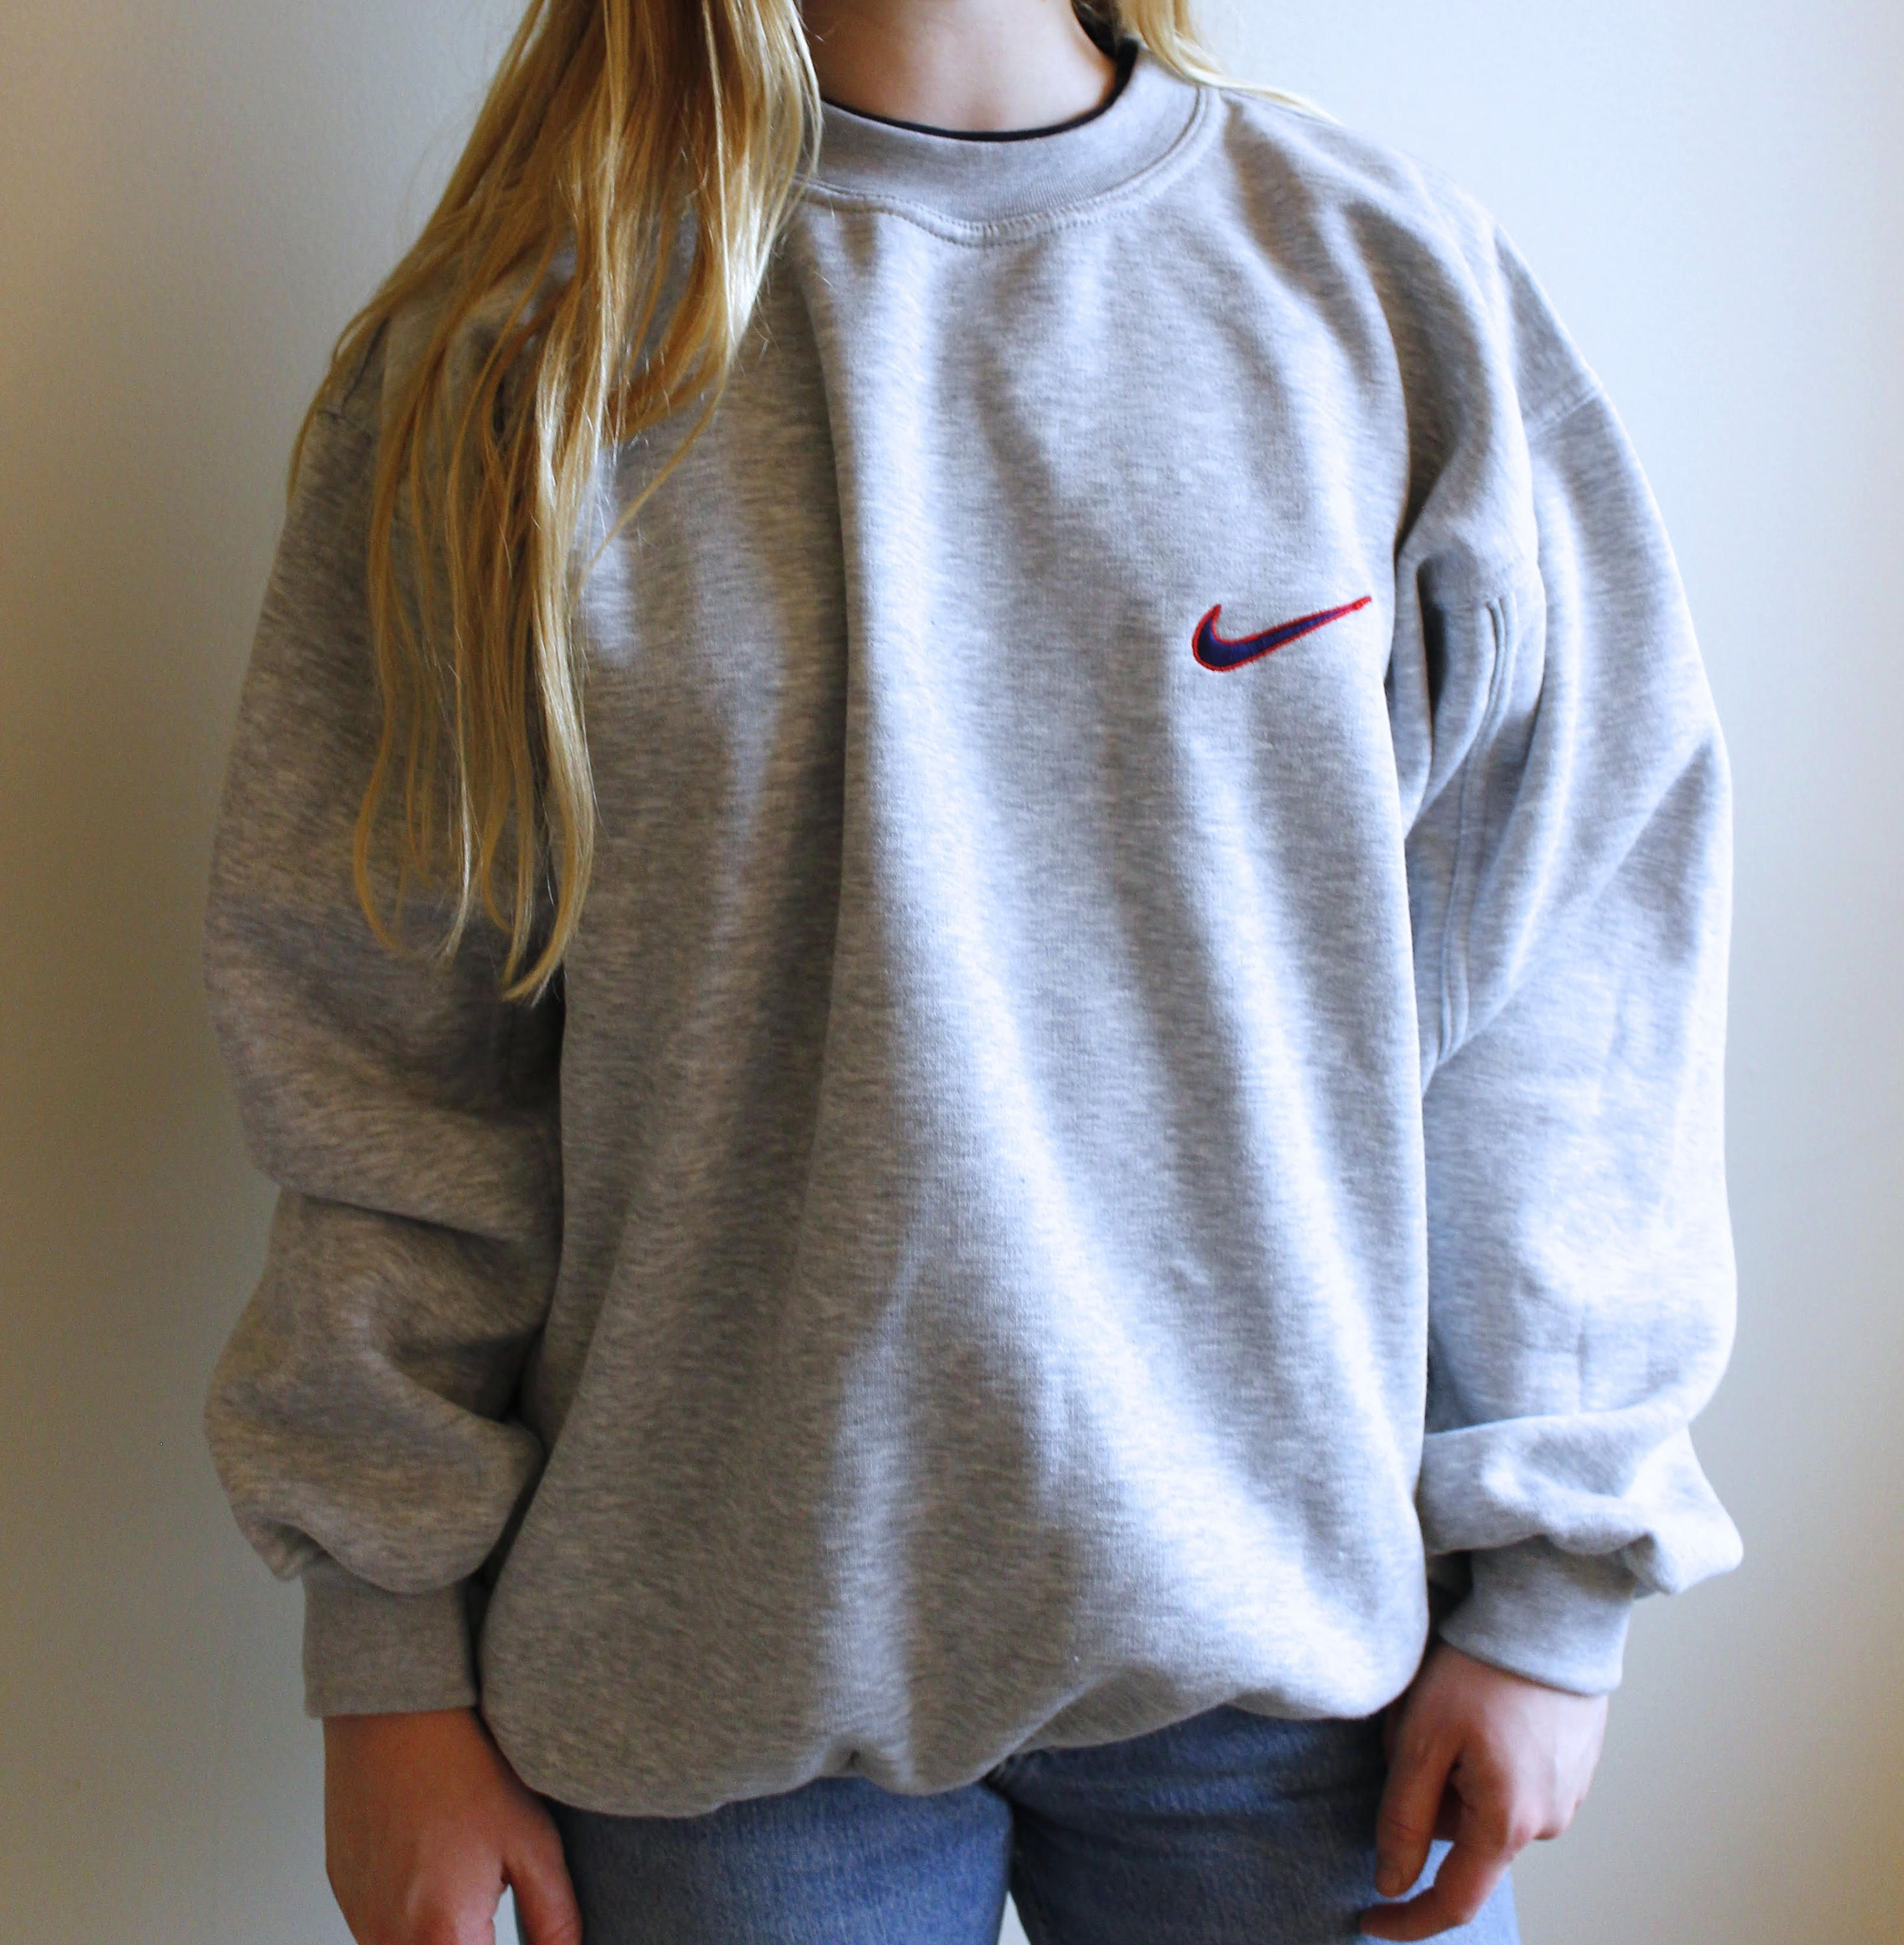 8aa05e053 Vintage Nike Pullover // 90s Nike Gray Sweatshirt // Retro Pullover by  LowTideVintage on Etsy